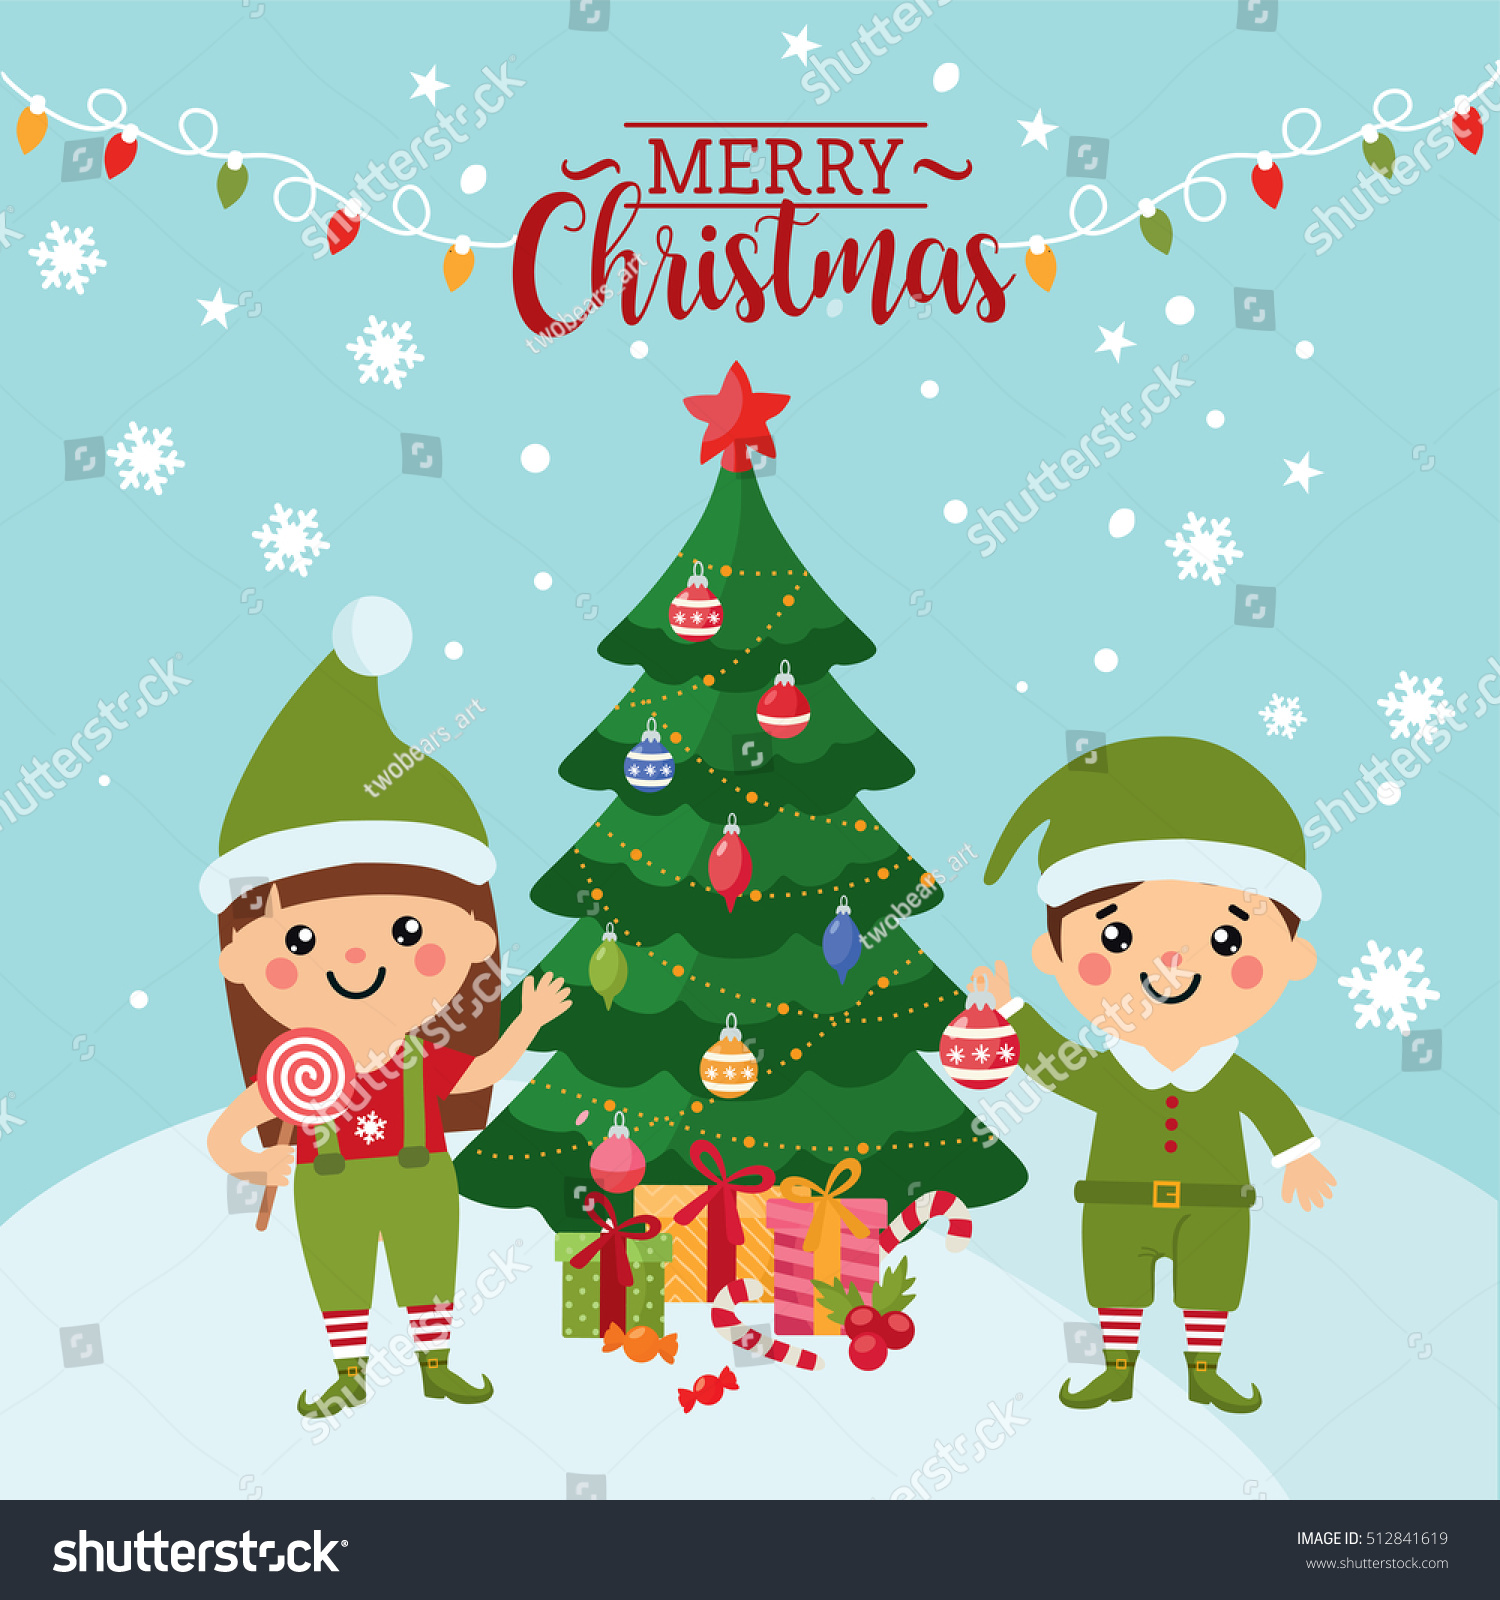 Merry christmas greeting card cute kids stock vector royalty free merry christmas greeting card with a cute kids kids in costumes of elves christmas m4hsunfo